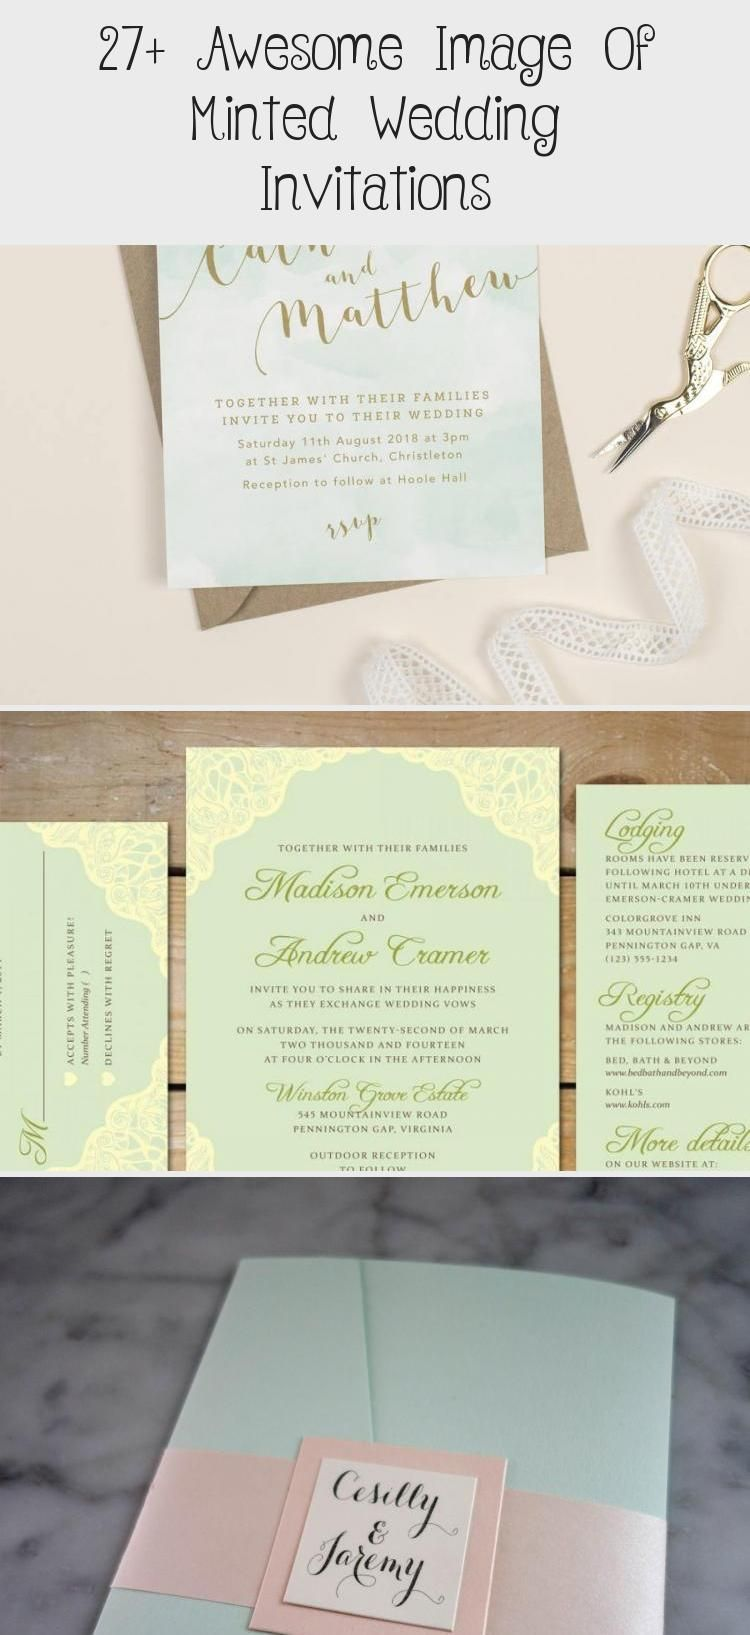 27 Awesome Image Of Minted Wedding Invitations Minted Wedding Invitations Paint 27 Awesome Image Of Mint In 2020 Mint Wedding Mint Invitation Wedding Invitations